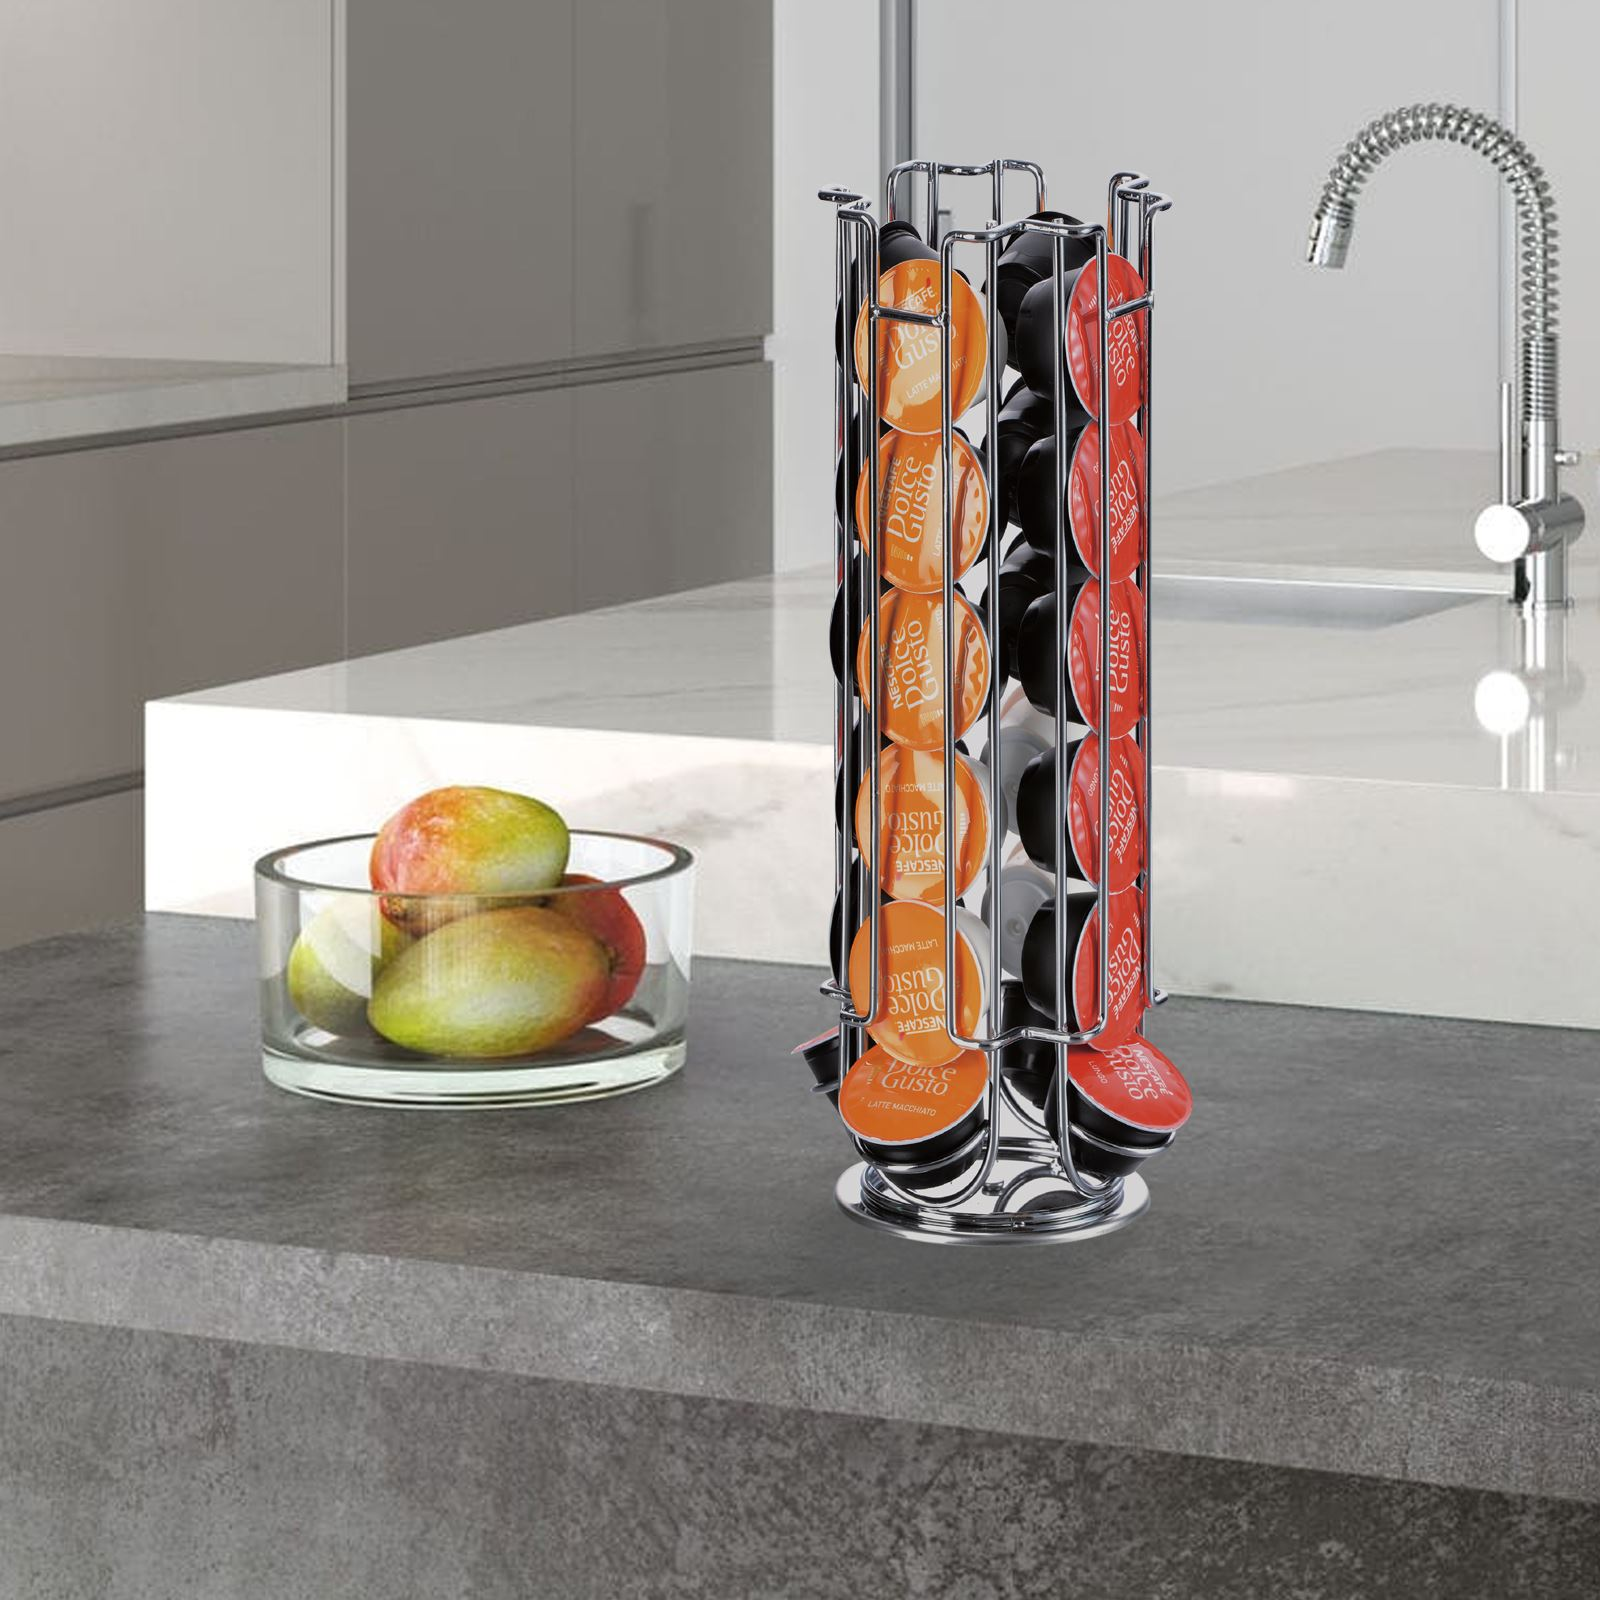 New-Coffee-Pod-Capsule-Stand-Tower-Rack-Dolce-Gusto-Dispenser-Rotating-Standing thumbnail 4